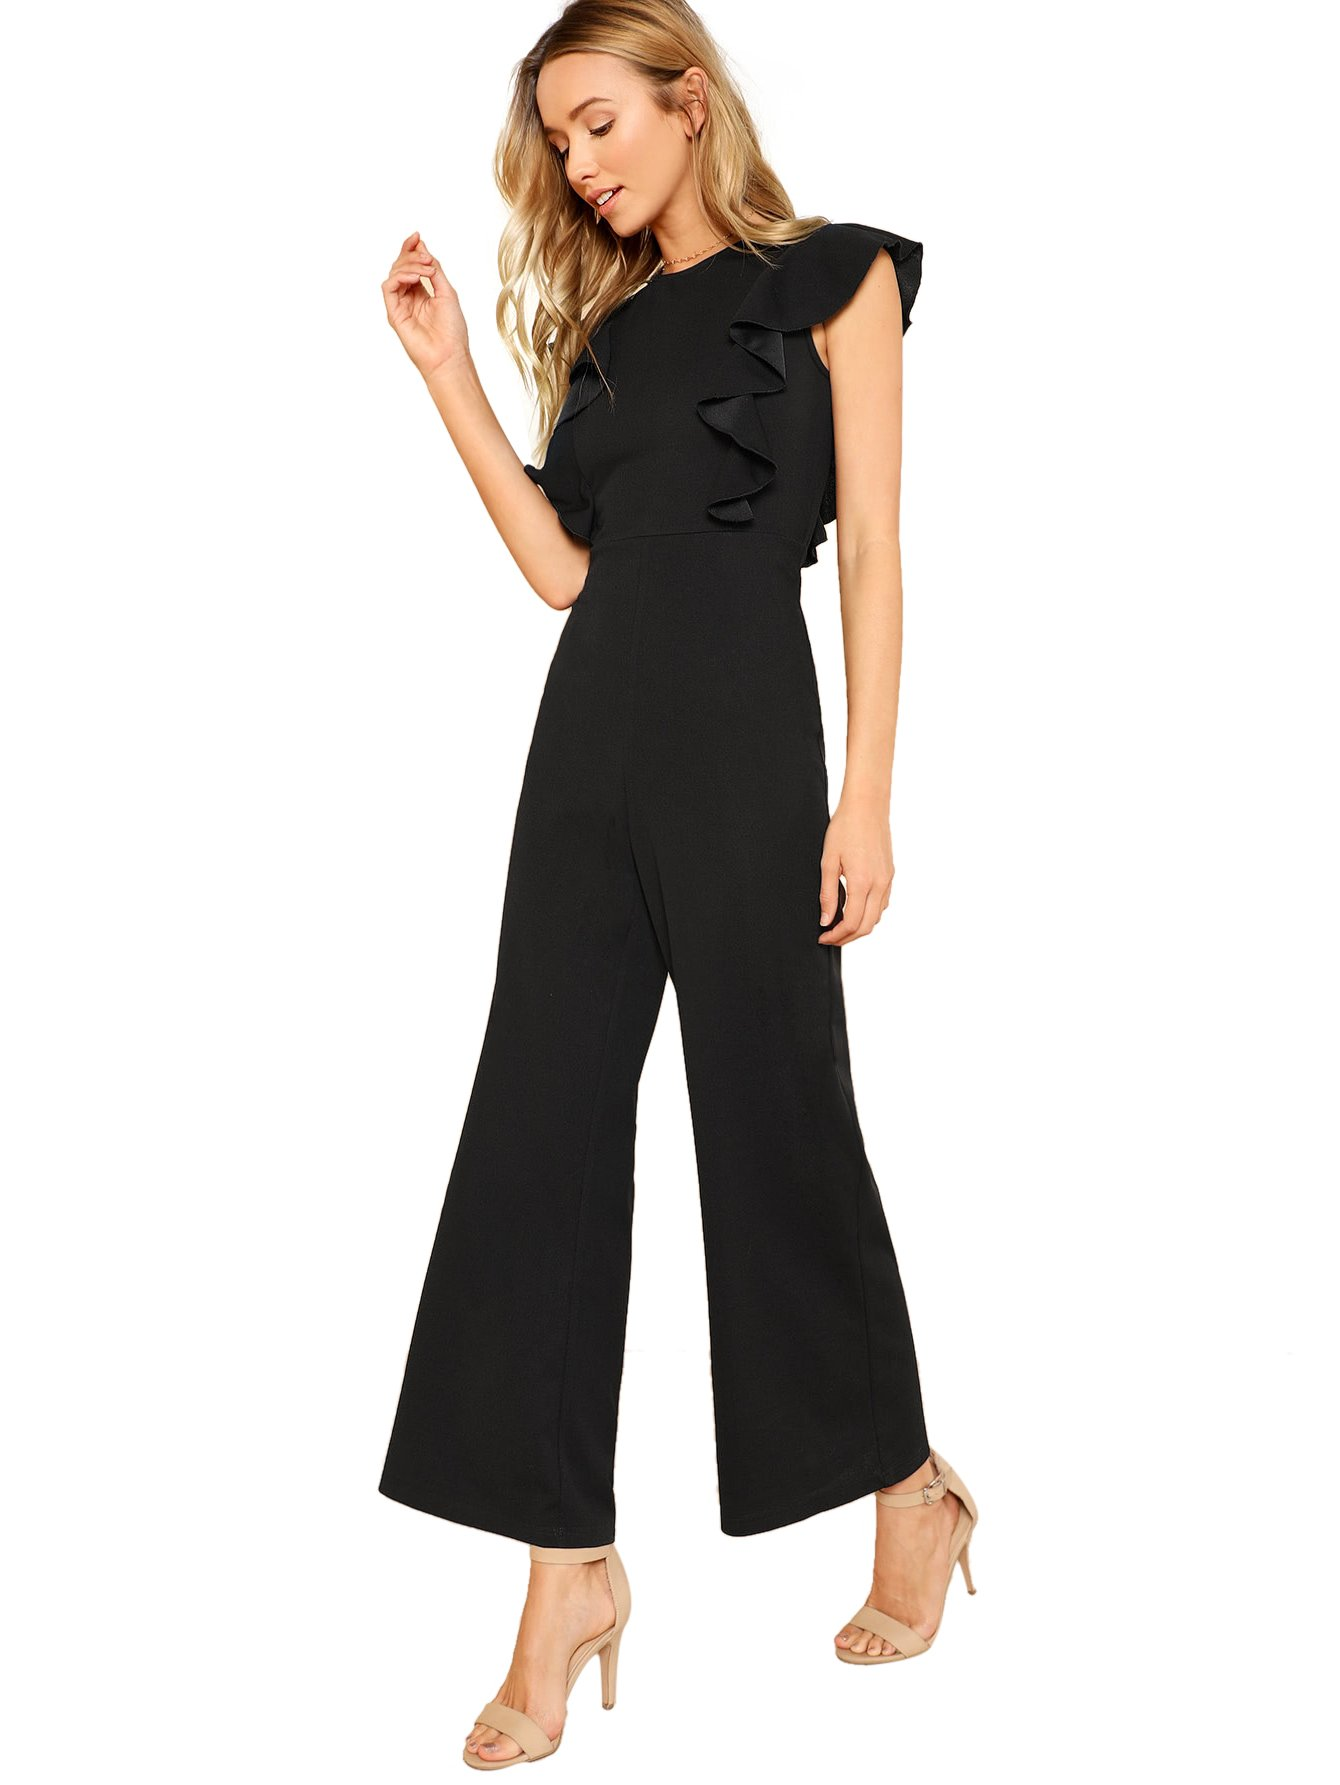 3c5bd047c98 Romwe Women s Sexy Casual Sleeveless Ruffle Trim Wide Leg High Waist Long  Jumpsuit product image